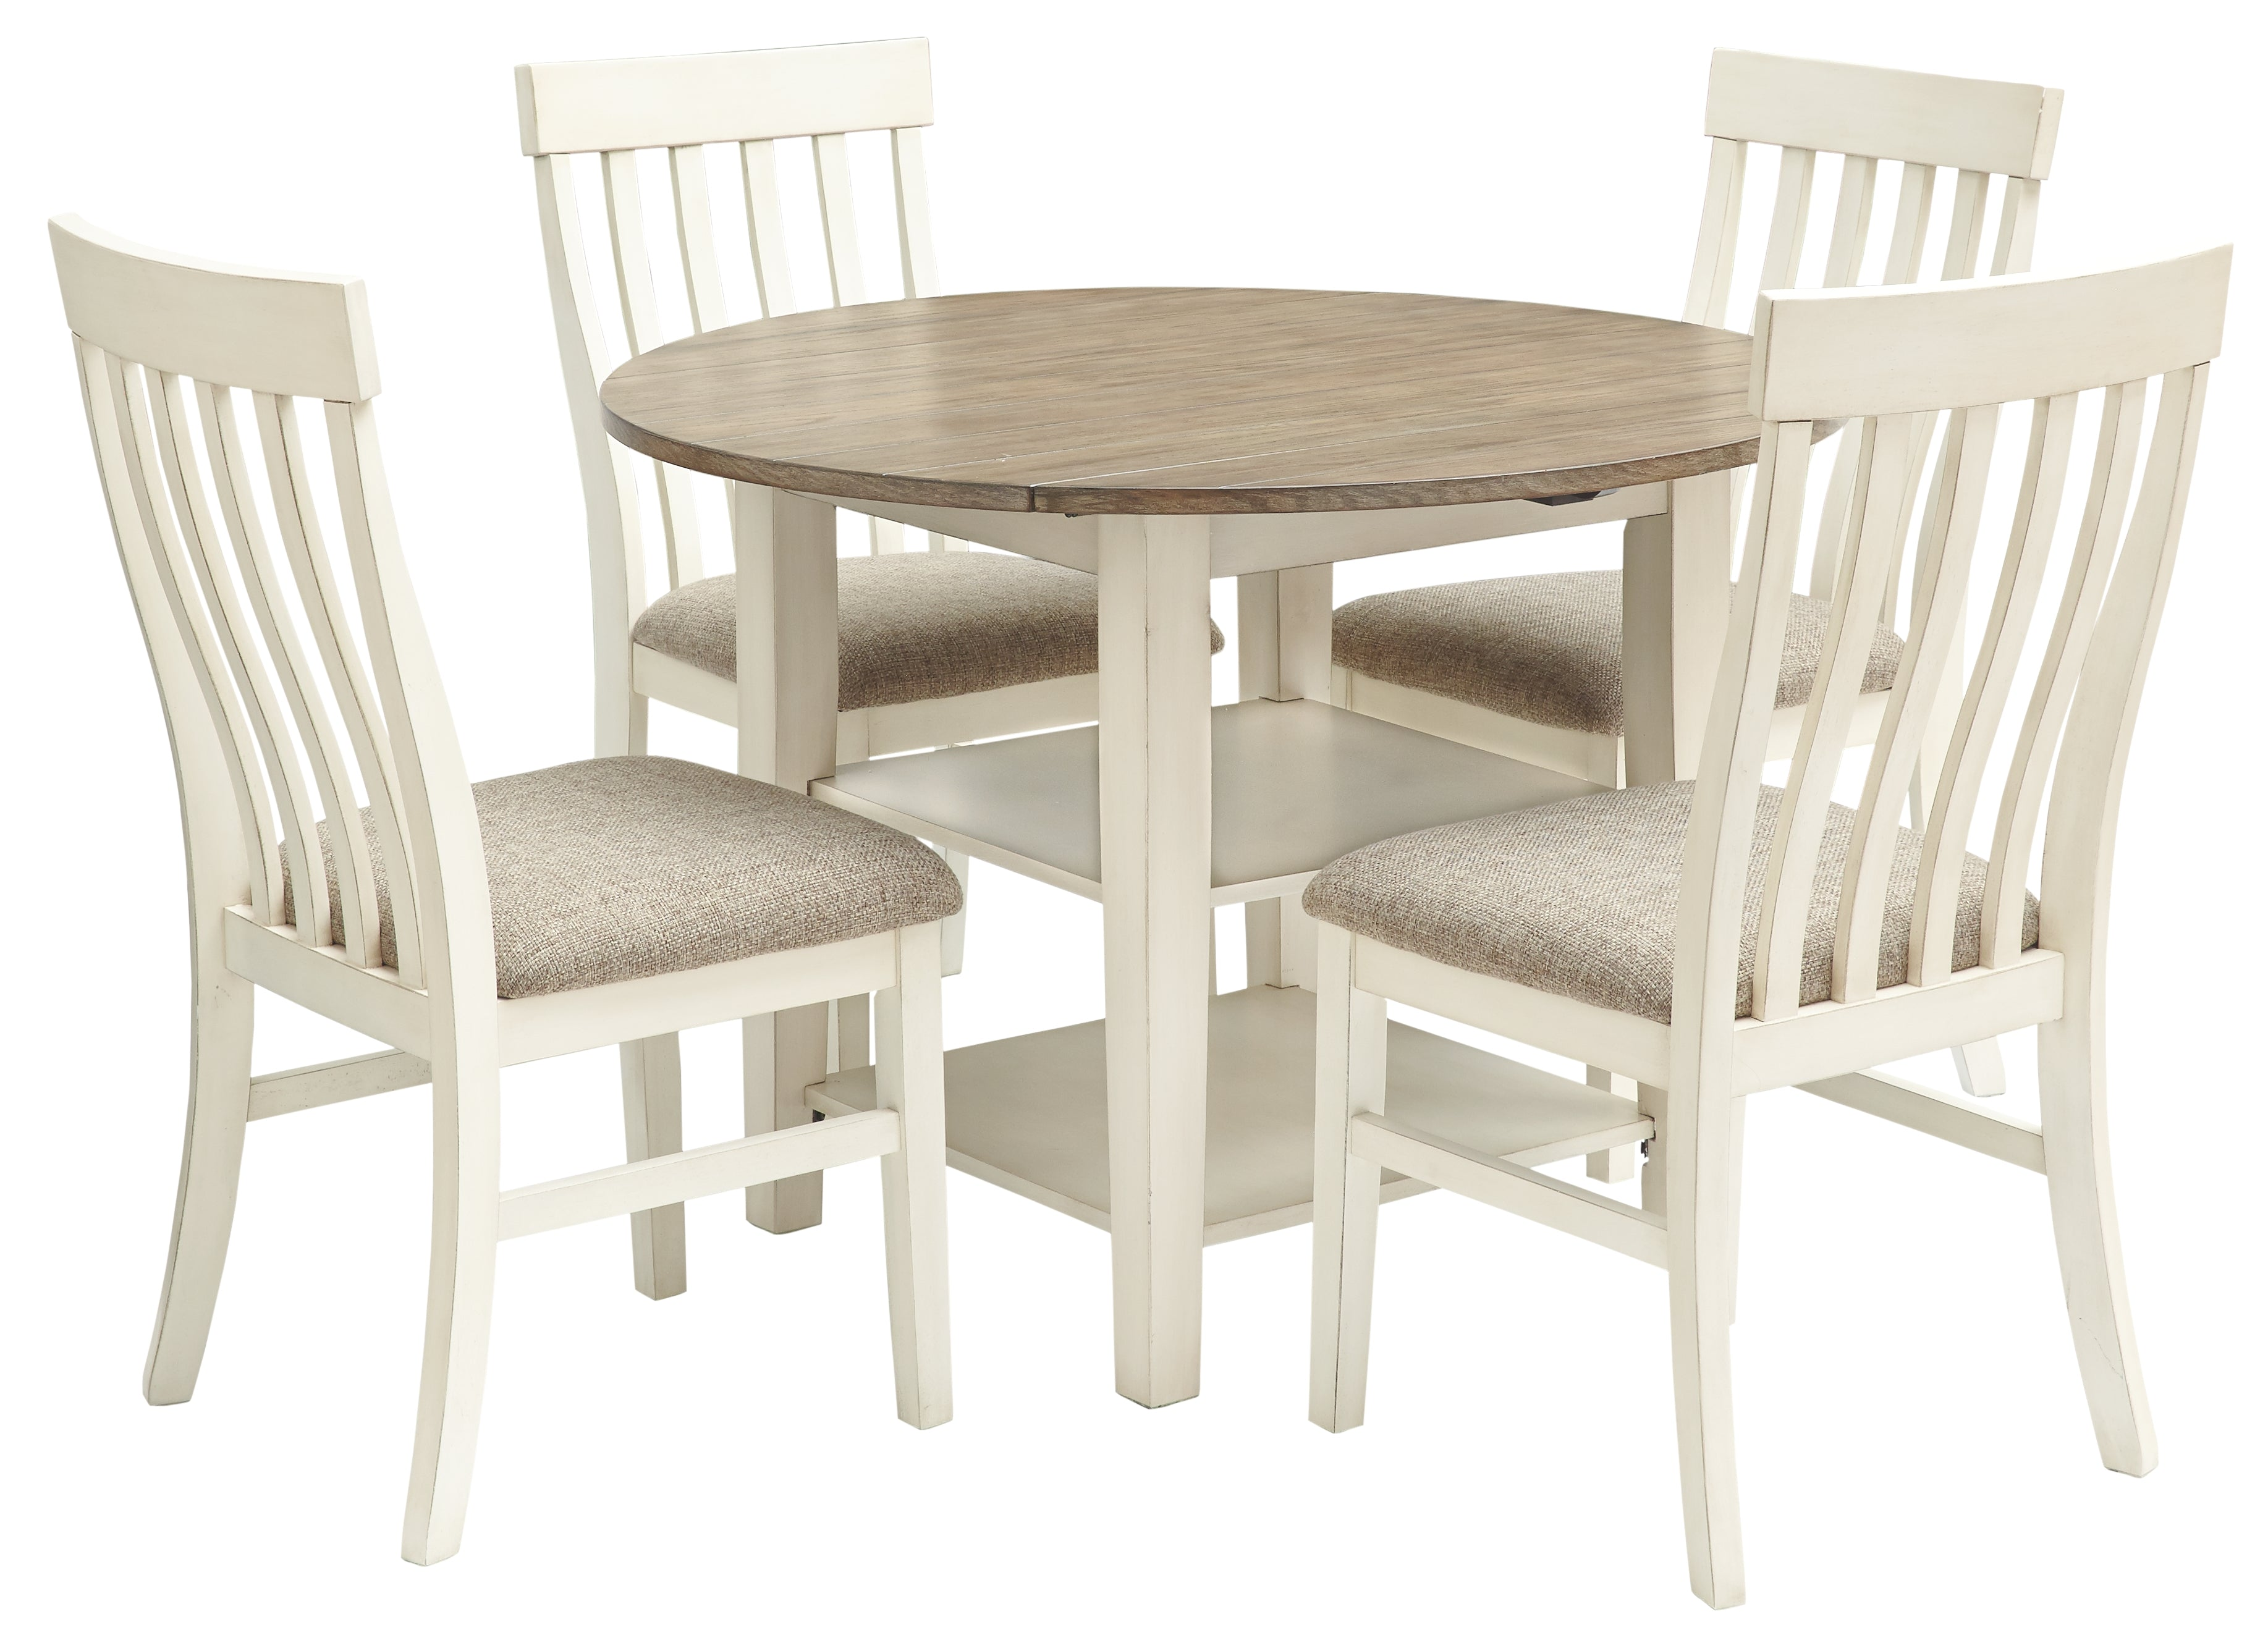 Bardilyn Benchcraft 5-Piece Dining Room Package